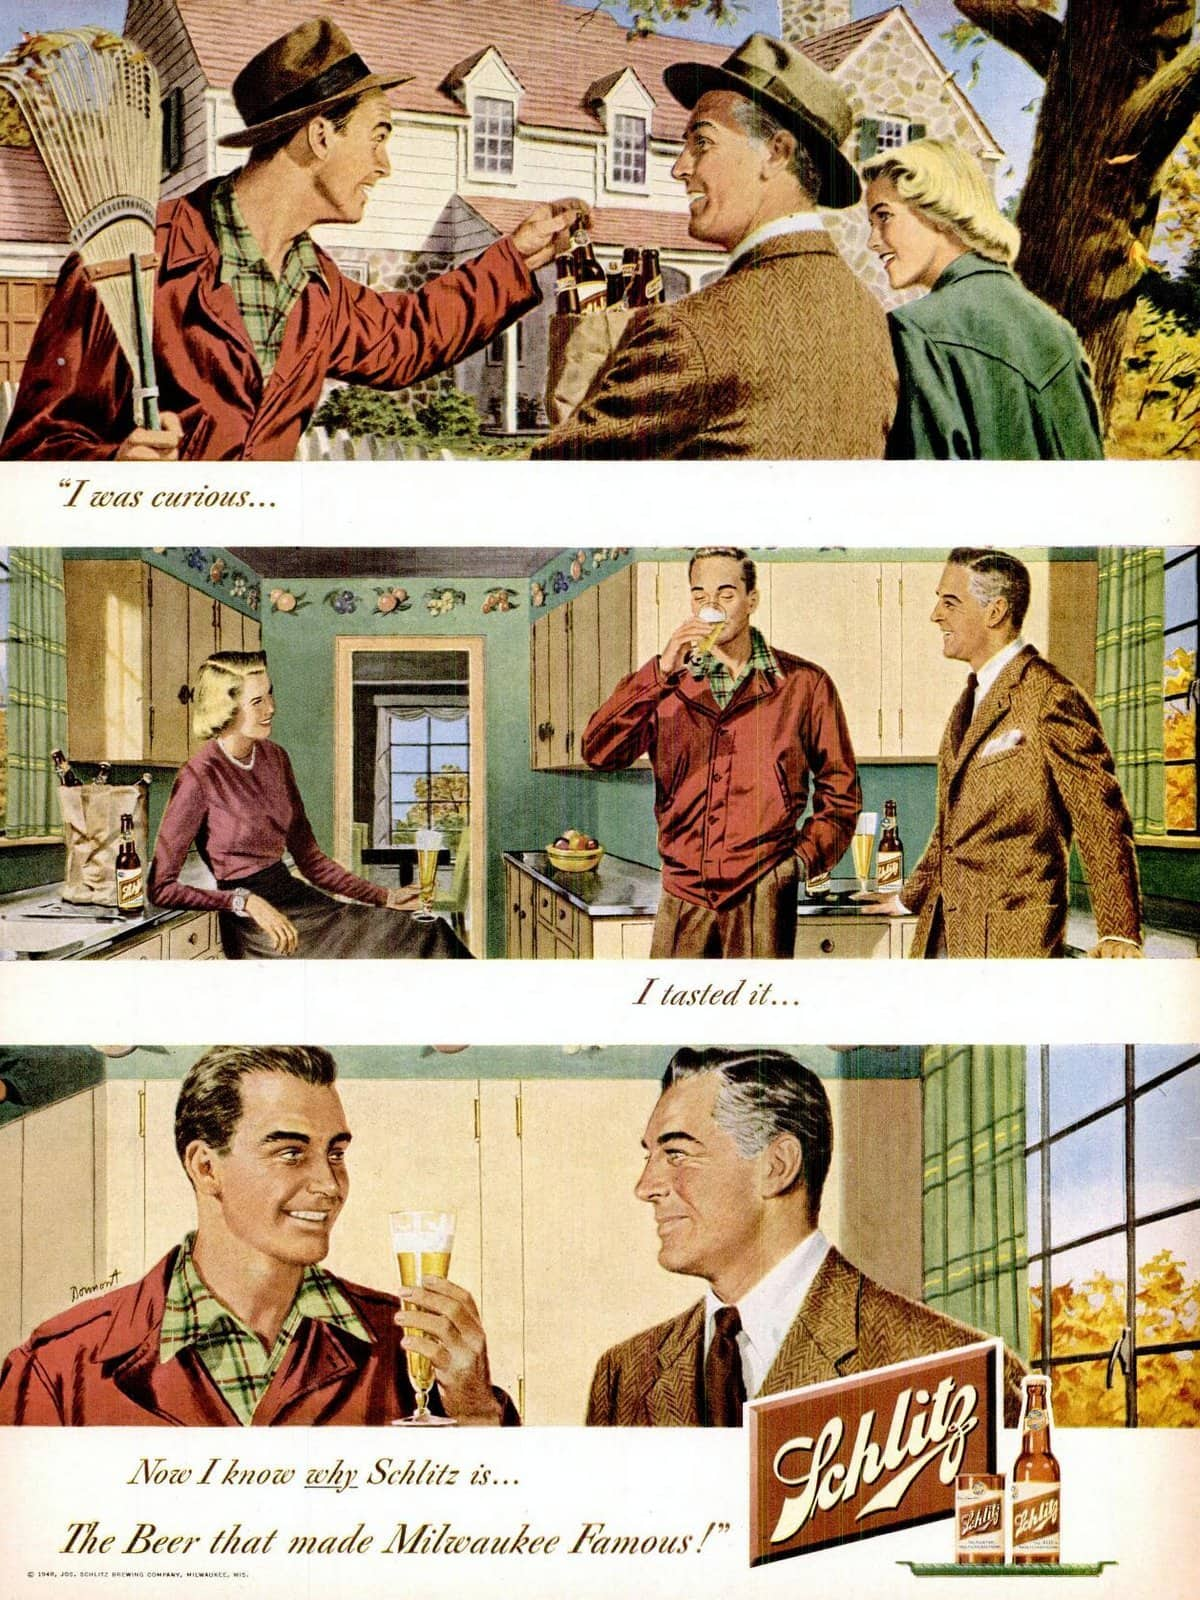 Trying beer (1948)